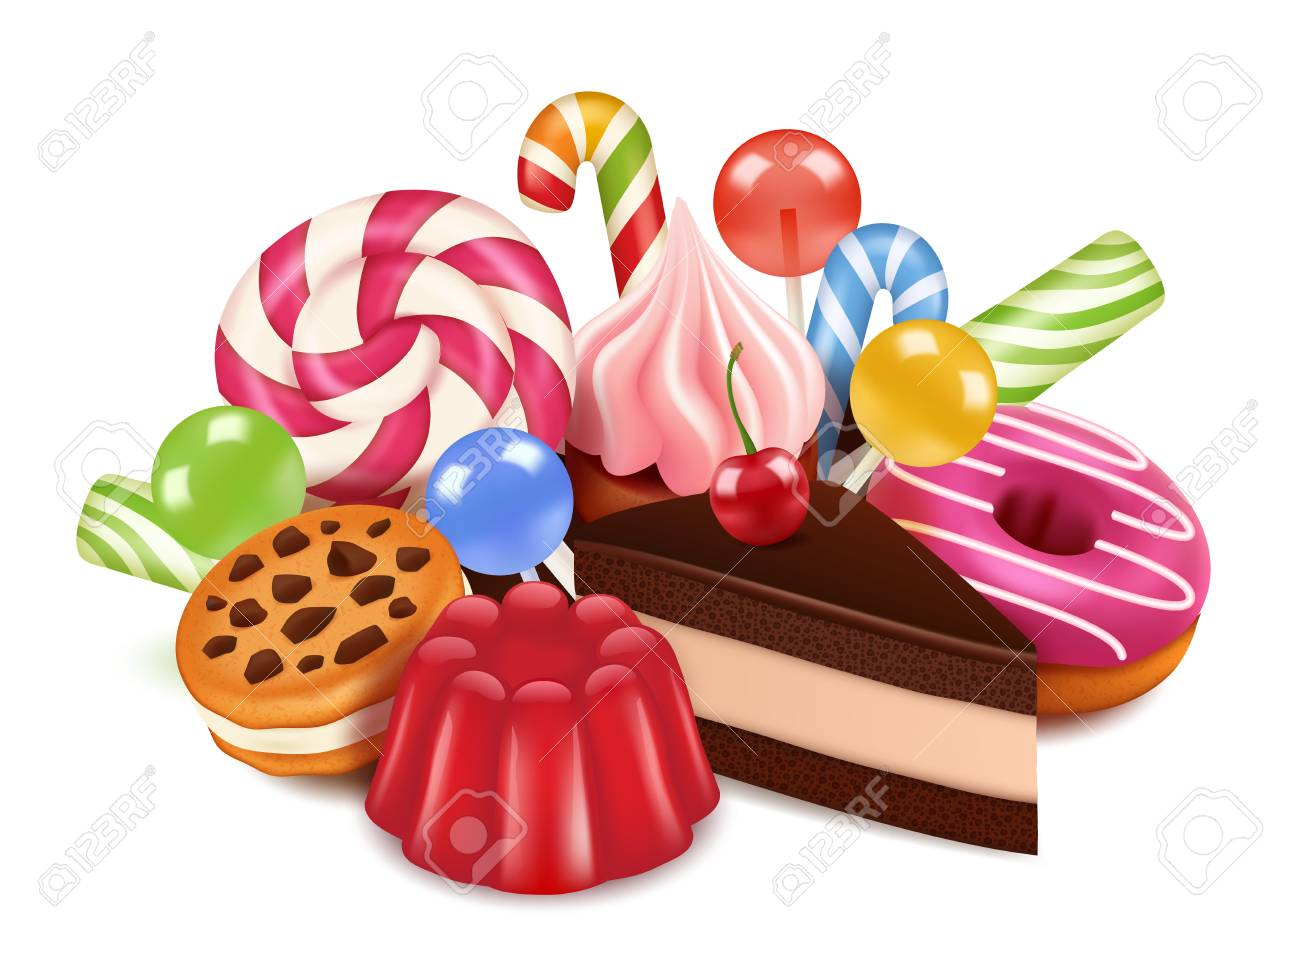 Dessert illustrations. Background with homemade cakes, chocolate candy lollipop and sweets. Vector high res pictures of tasty desserts. Illustration of confectionery, delicious yummy dessert - 110236972